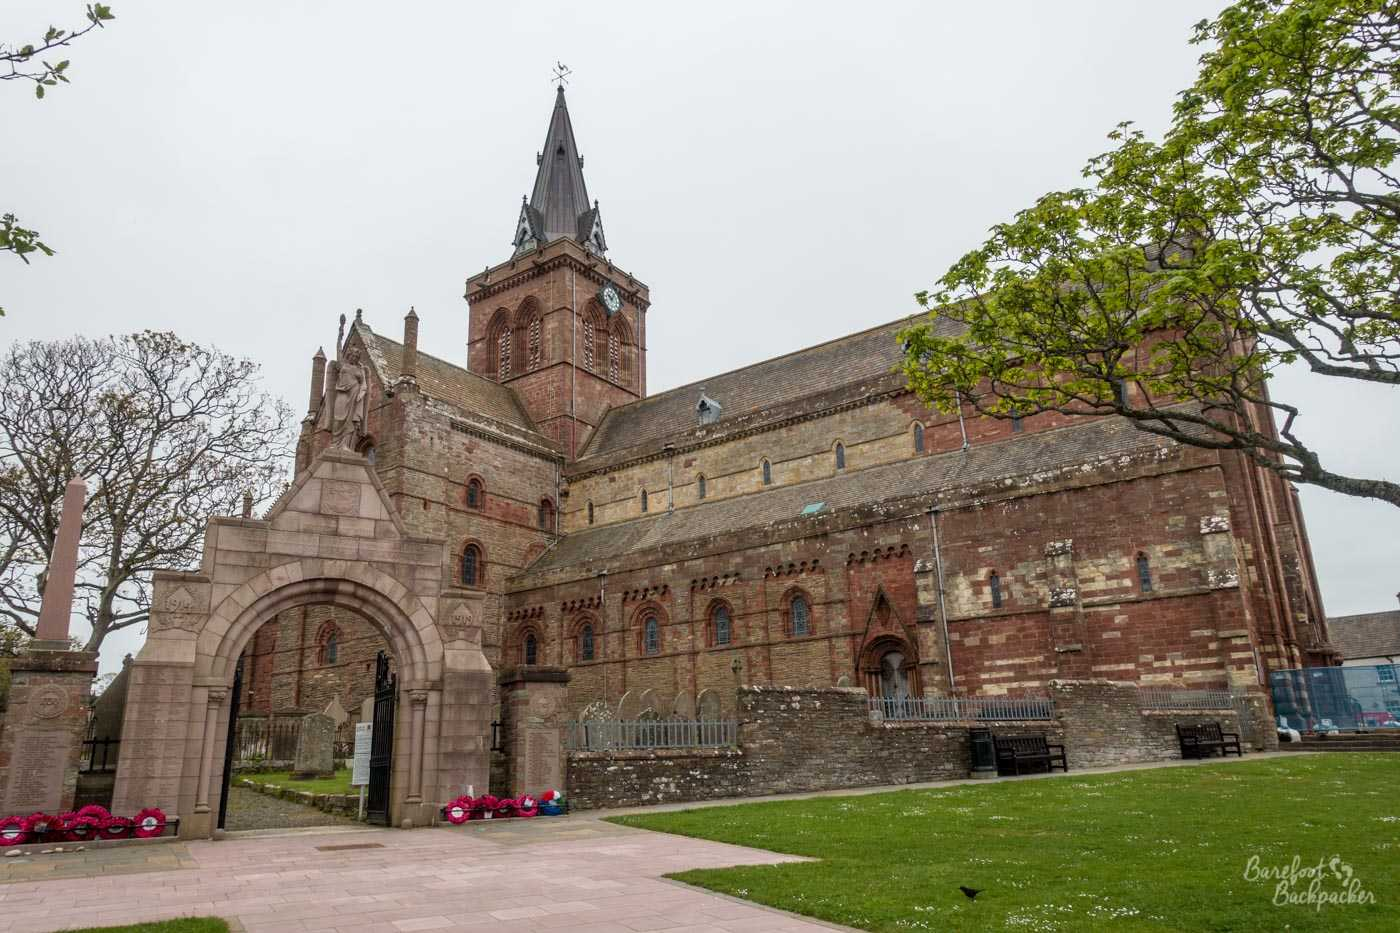 The outside of Kirkwall Cathedral; a large building built with several sections each with a pointed roof. In the background is the tower. In the foreground to the left is the entrance archway. There are remembrance wreathes on the wall near the arch.